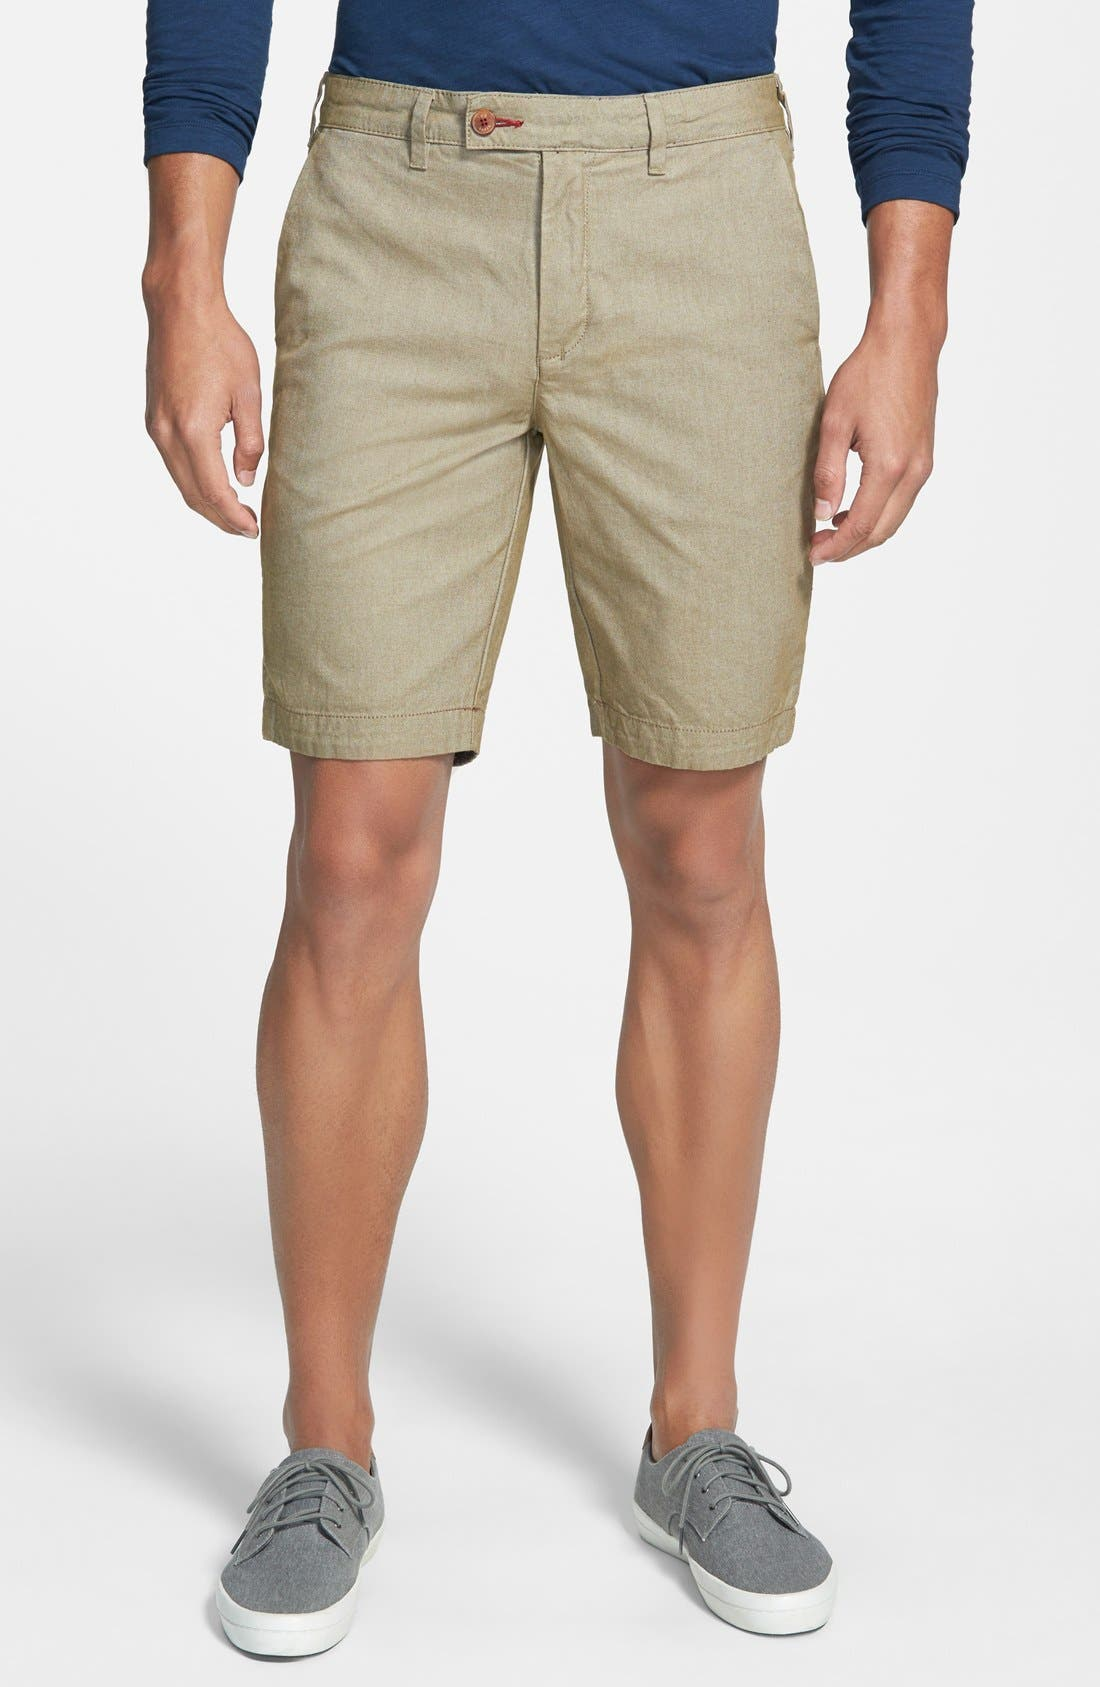 TED BAKER LONDON Twill Shorts, Main, color, 253